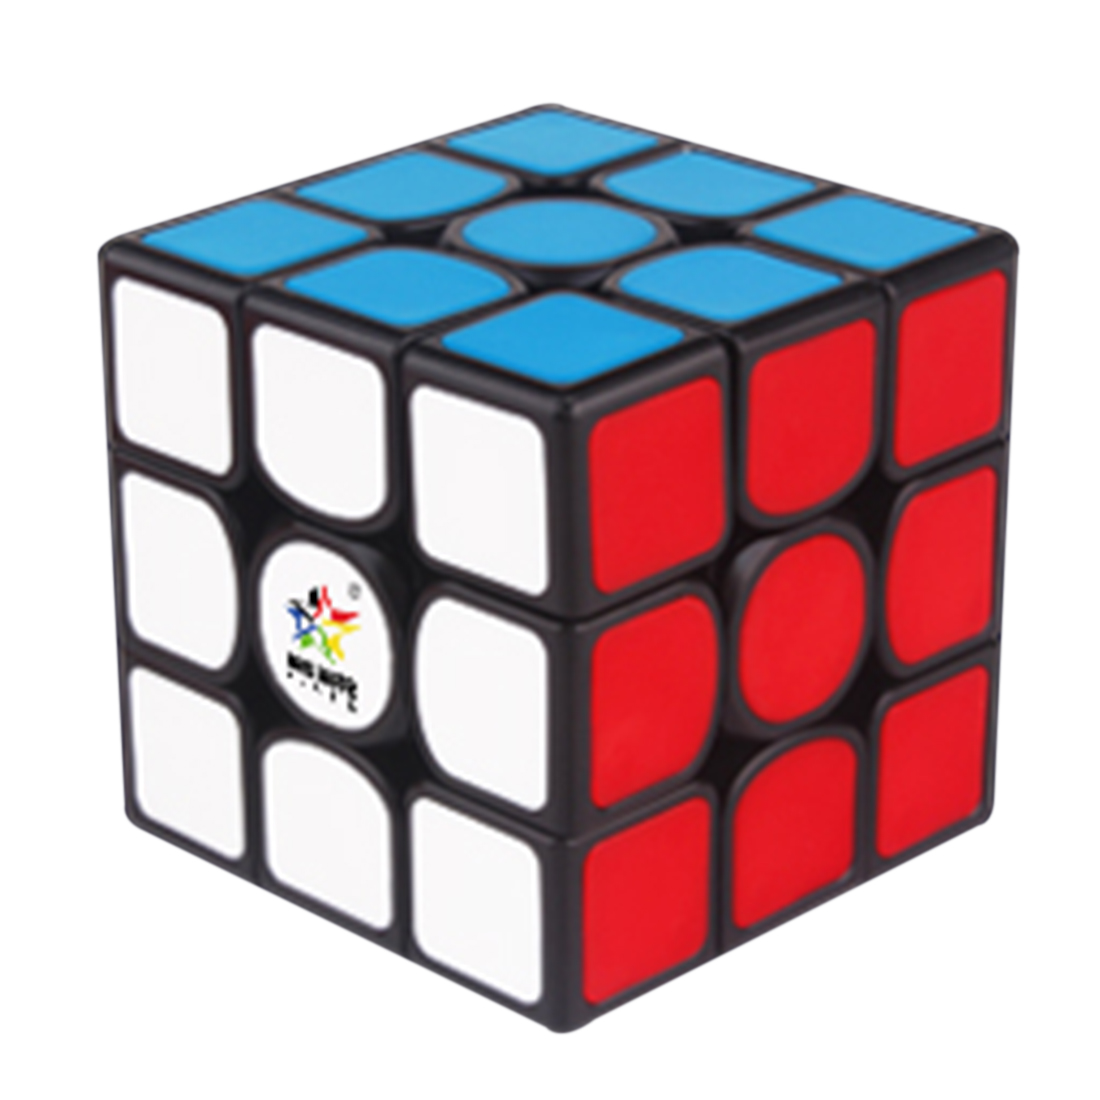 Yuxin Kylin V2M 3x3x3 Magnetic Magic Cube Square Cube Puzzle Toy For Brain Training - Black Background And Dark Red Paster